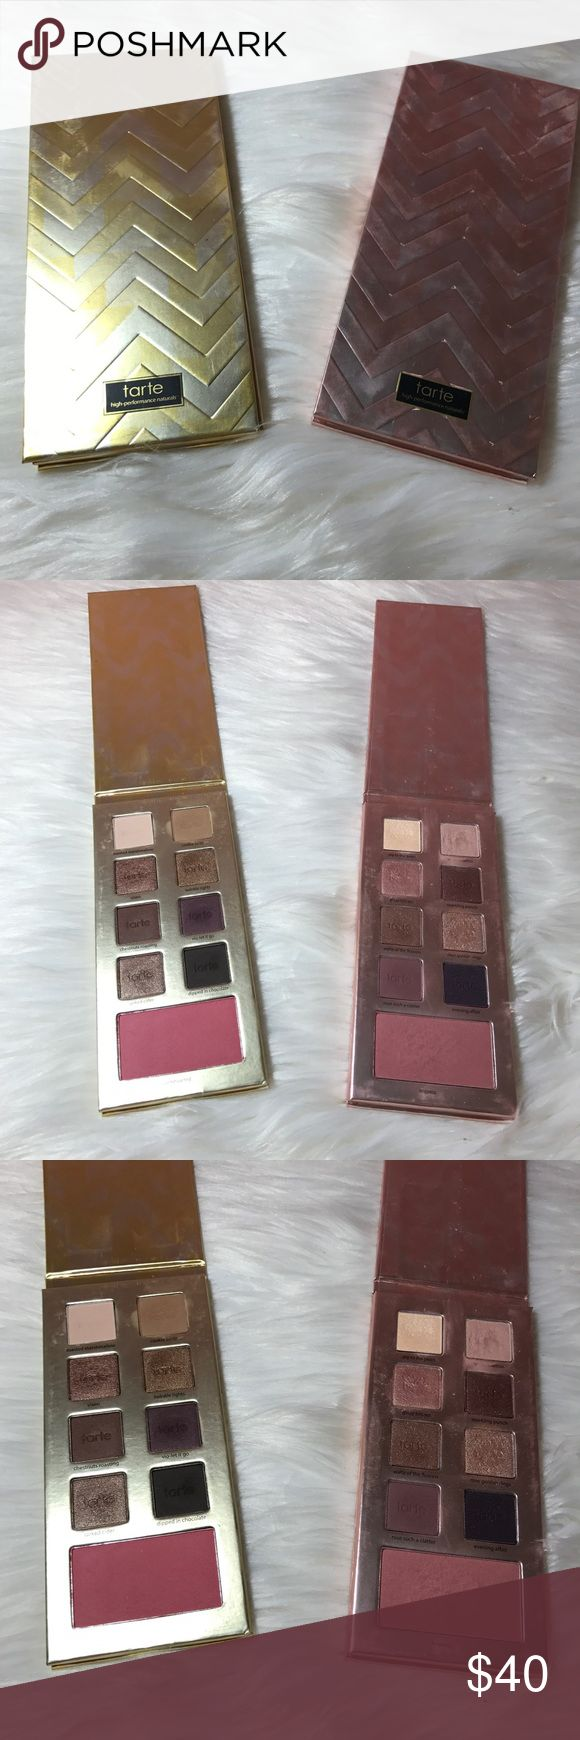 Two Tarte Holiday Palettes Only ever swatch but has been disinfected with isopropyl alcohol listed new with tags so I can share in Poshmark parties tarte Makeup Eyeshadow